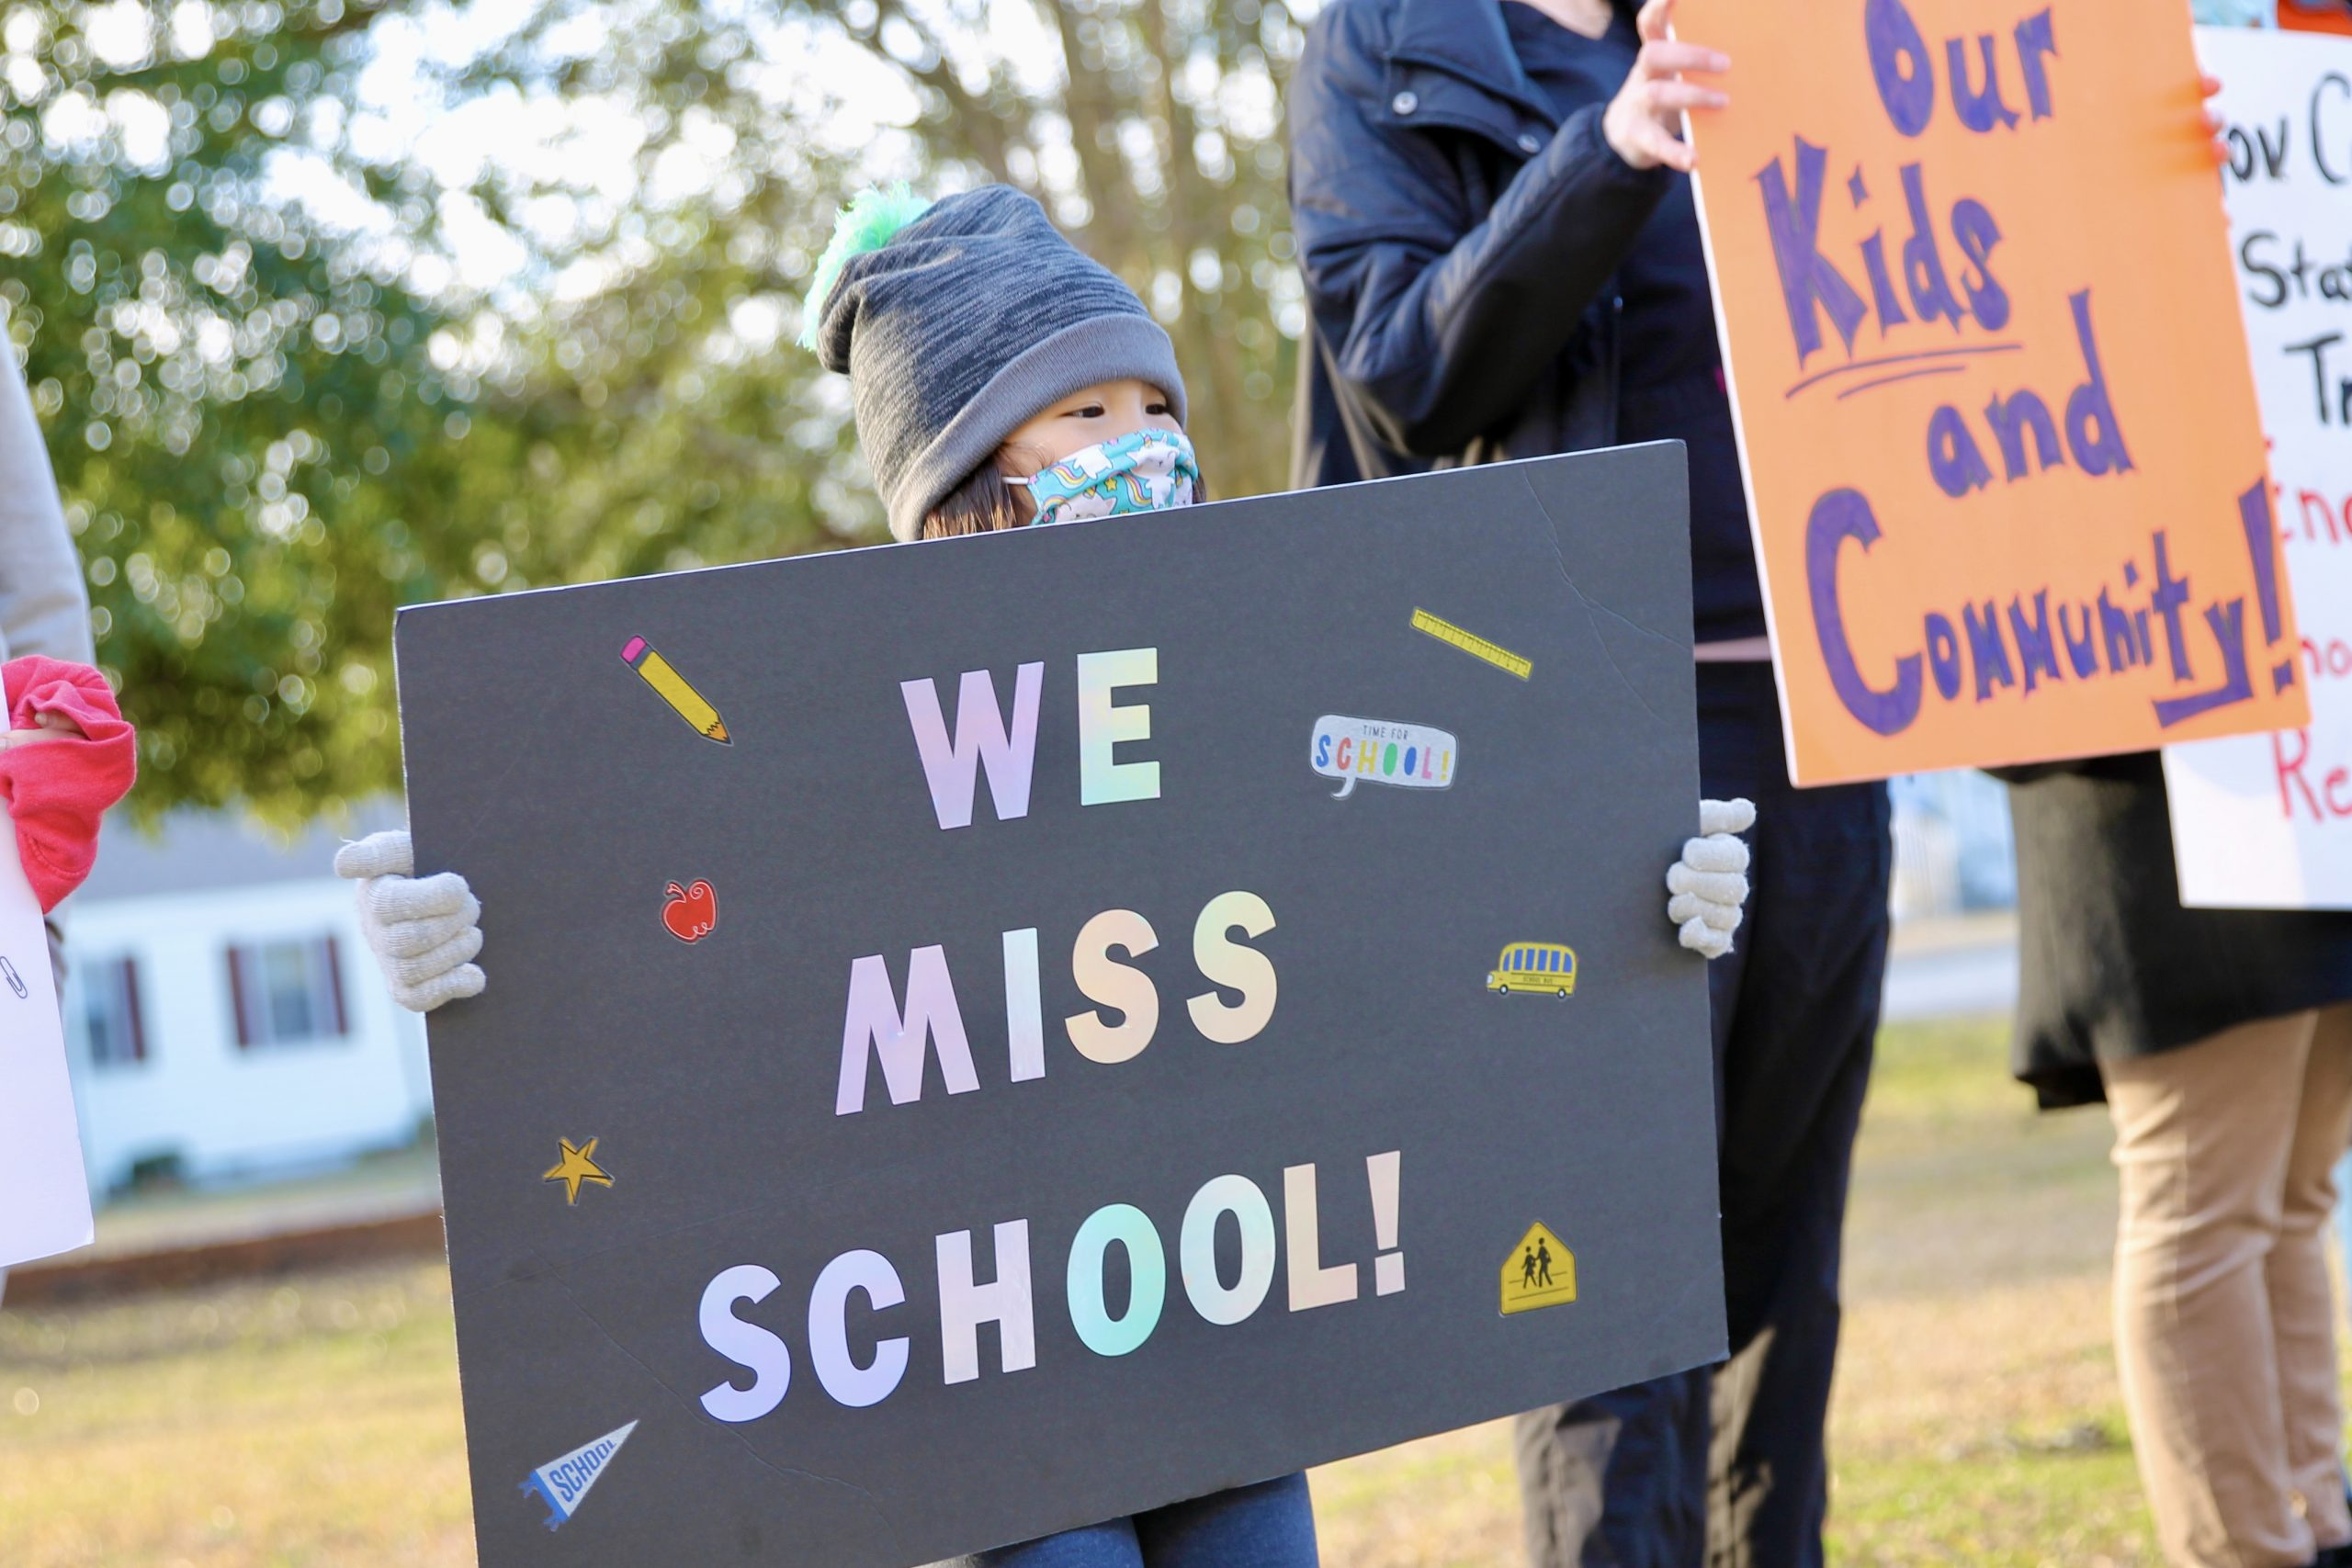 plan a nhcs board of education schools(Port City Daily photo/Alexandria Sands)